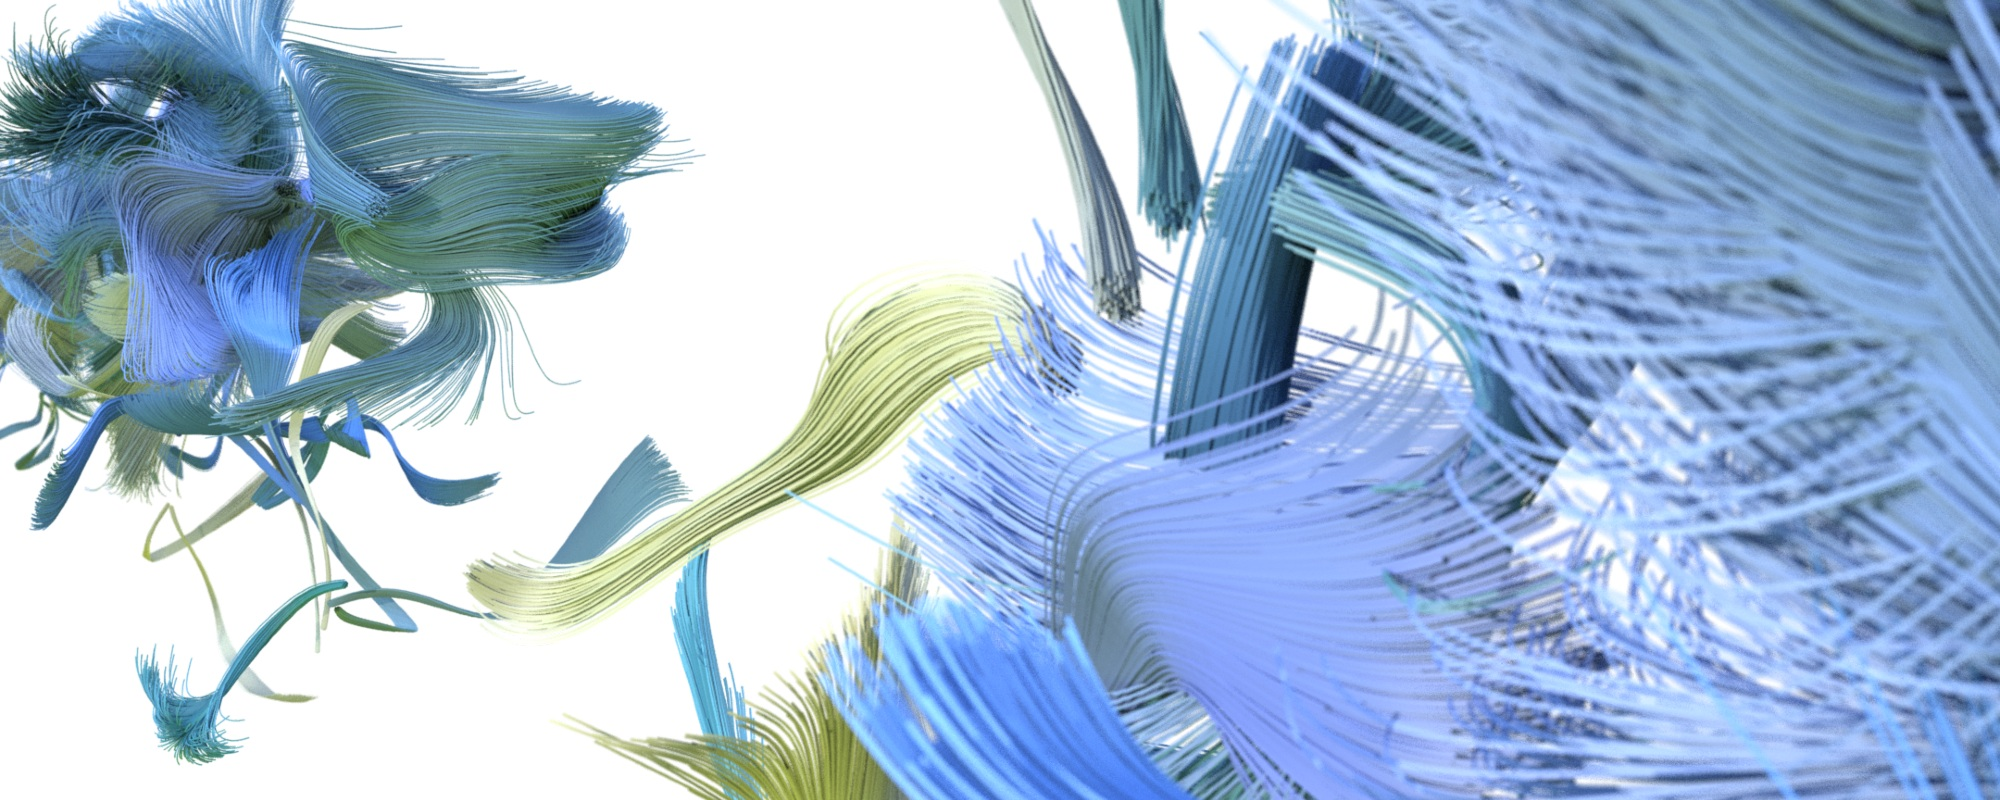 Abstract shapes on white background, resembling brush strokes in blue and green tones, representing brush strokes.